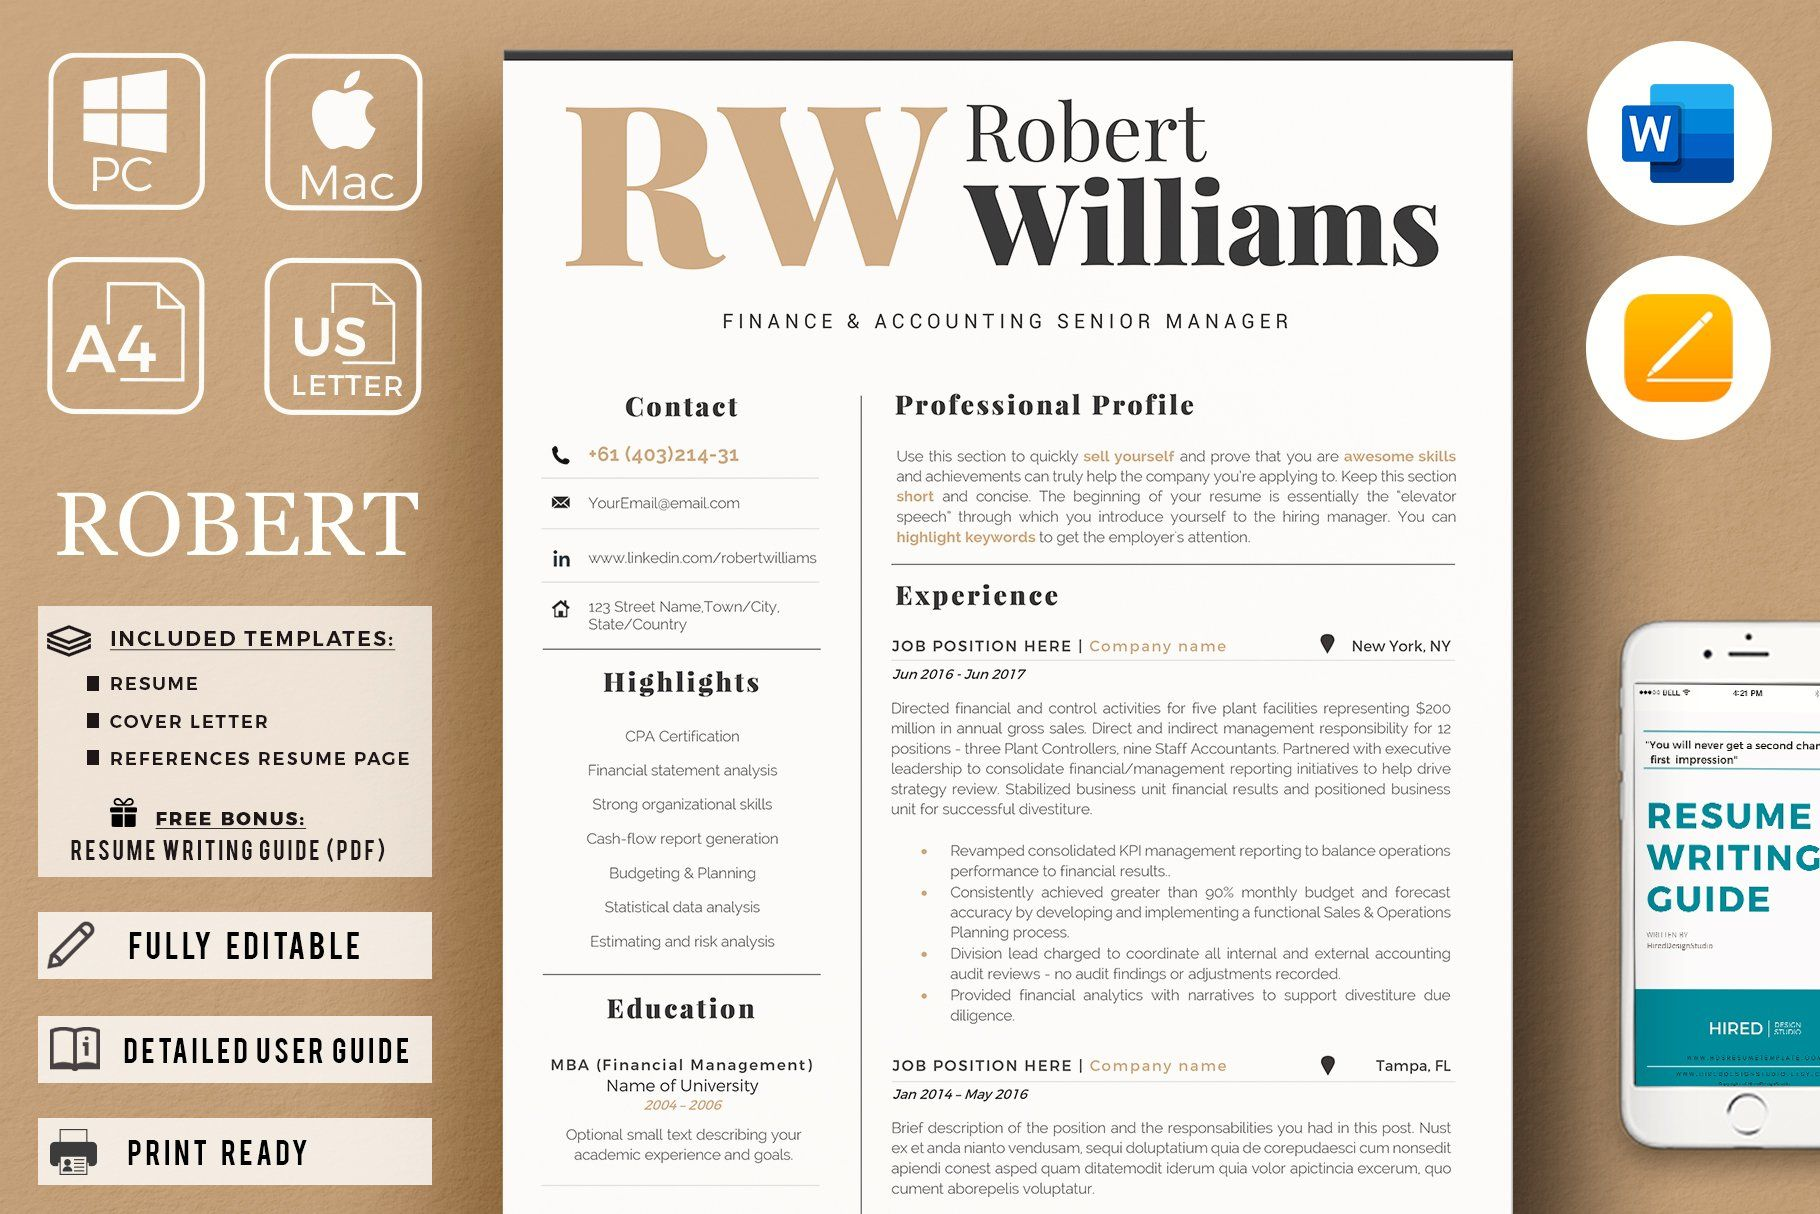 Accountant sales resume cover letter by hired design